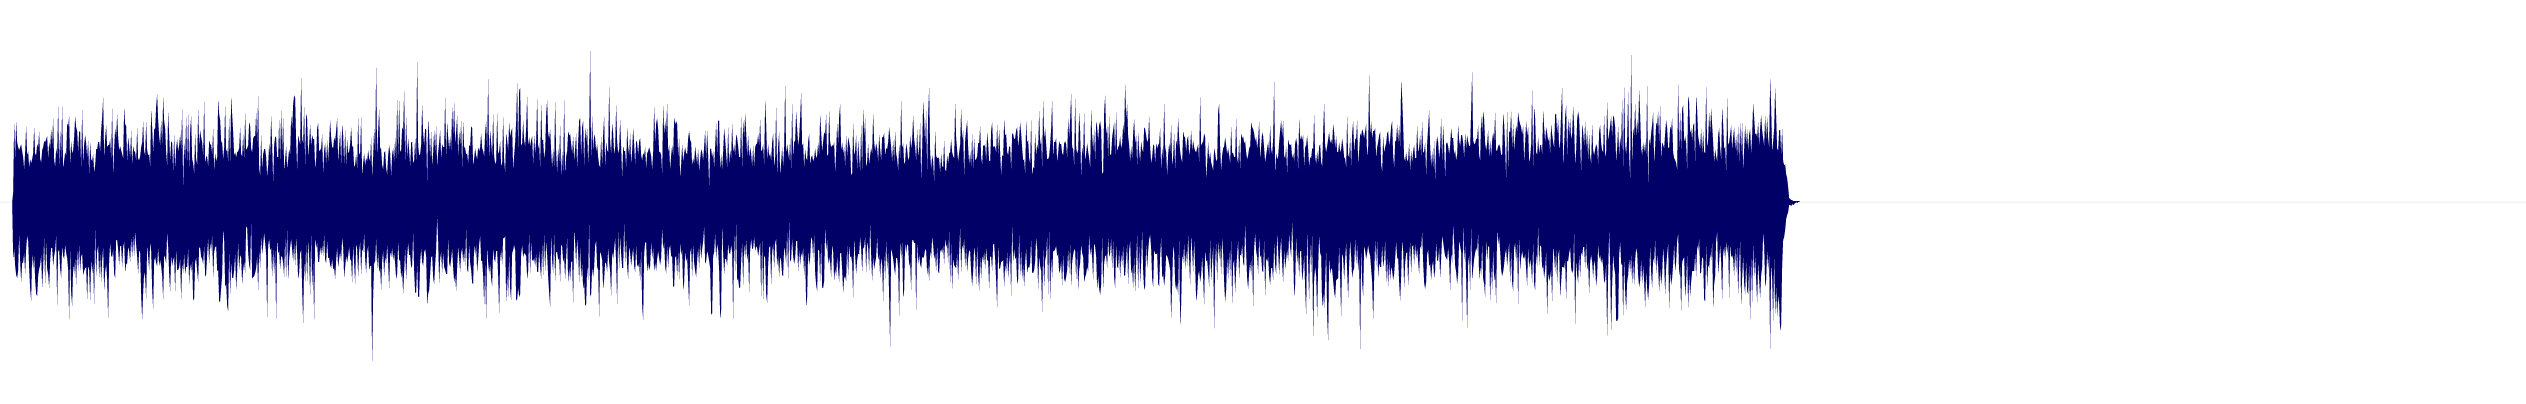 waveform of track #96496